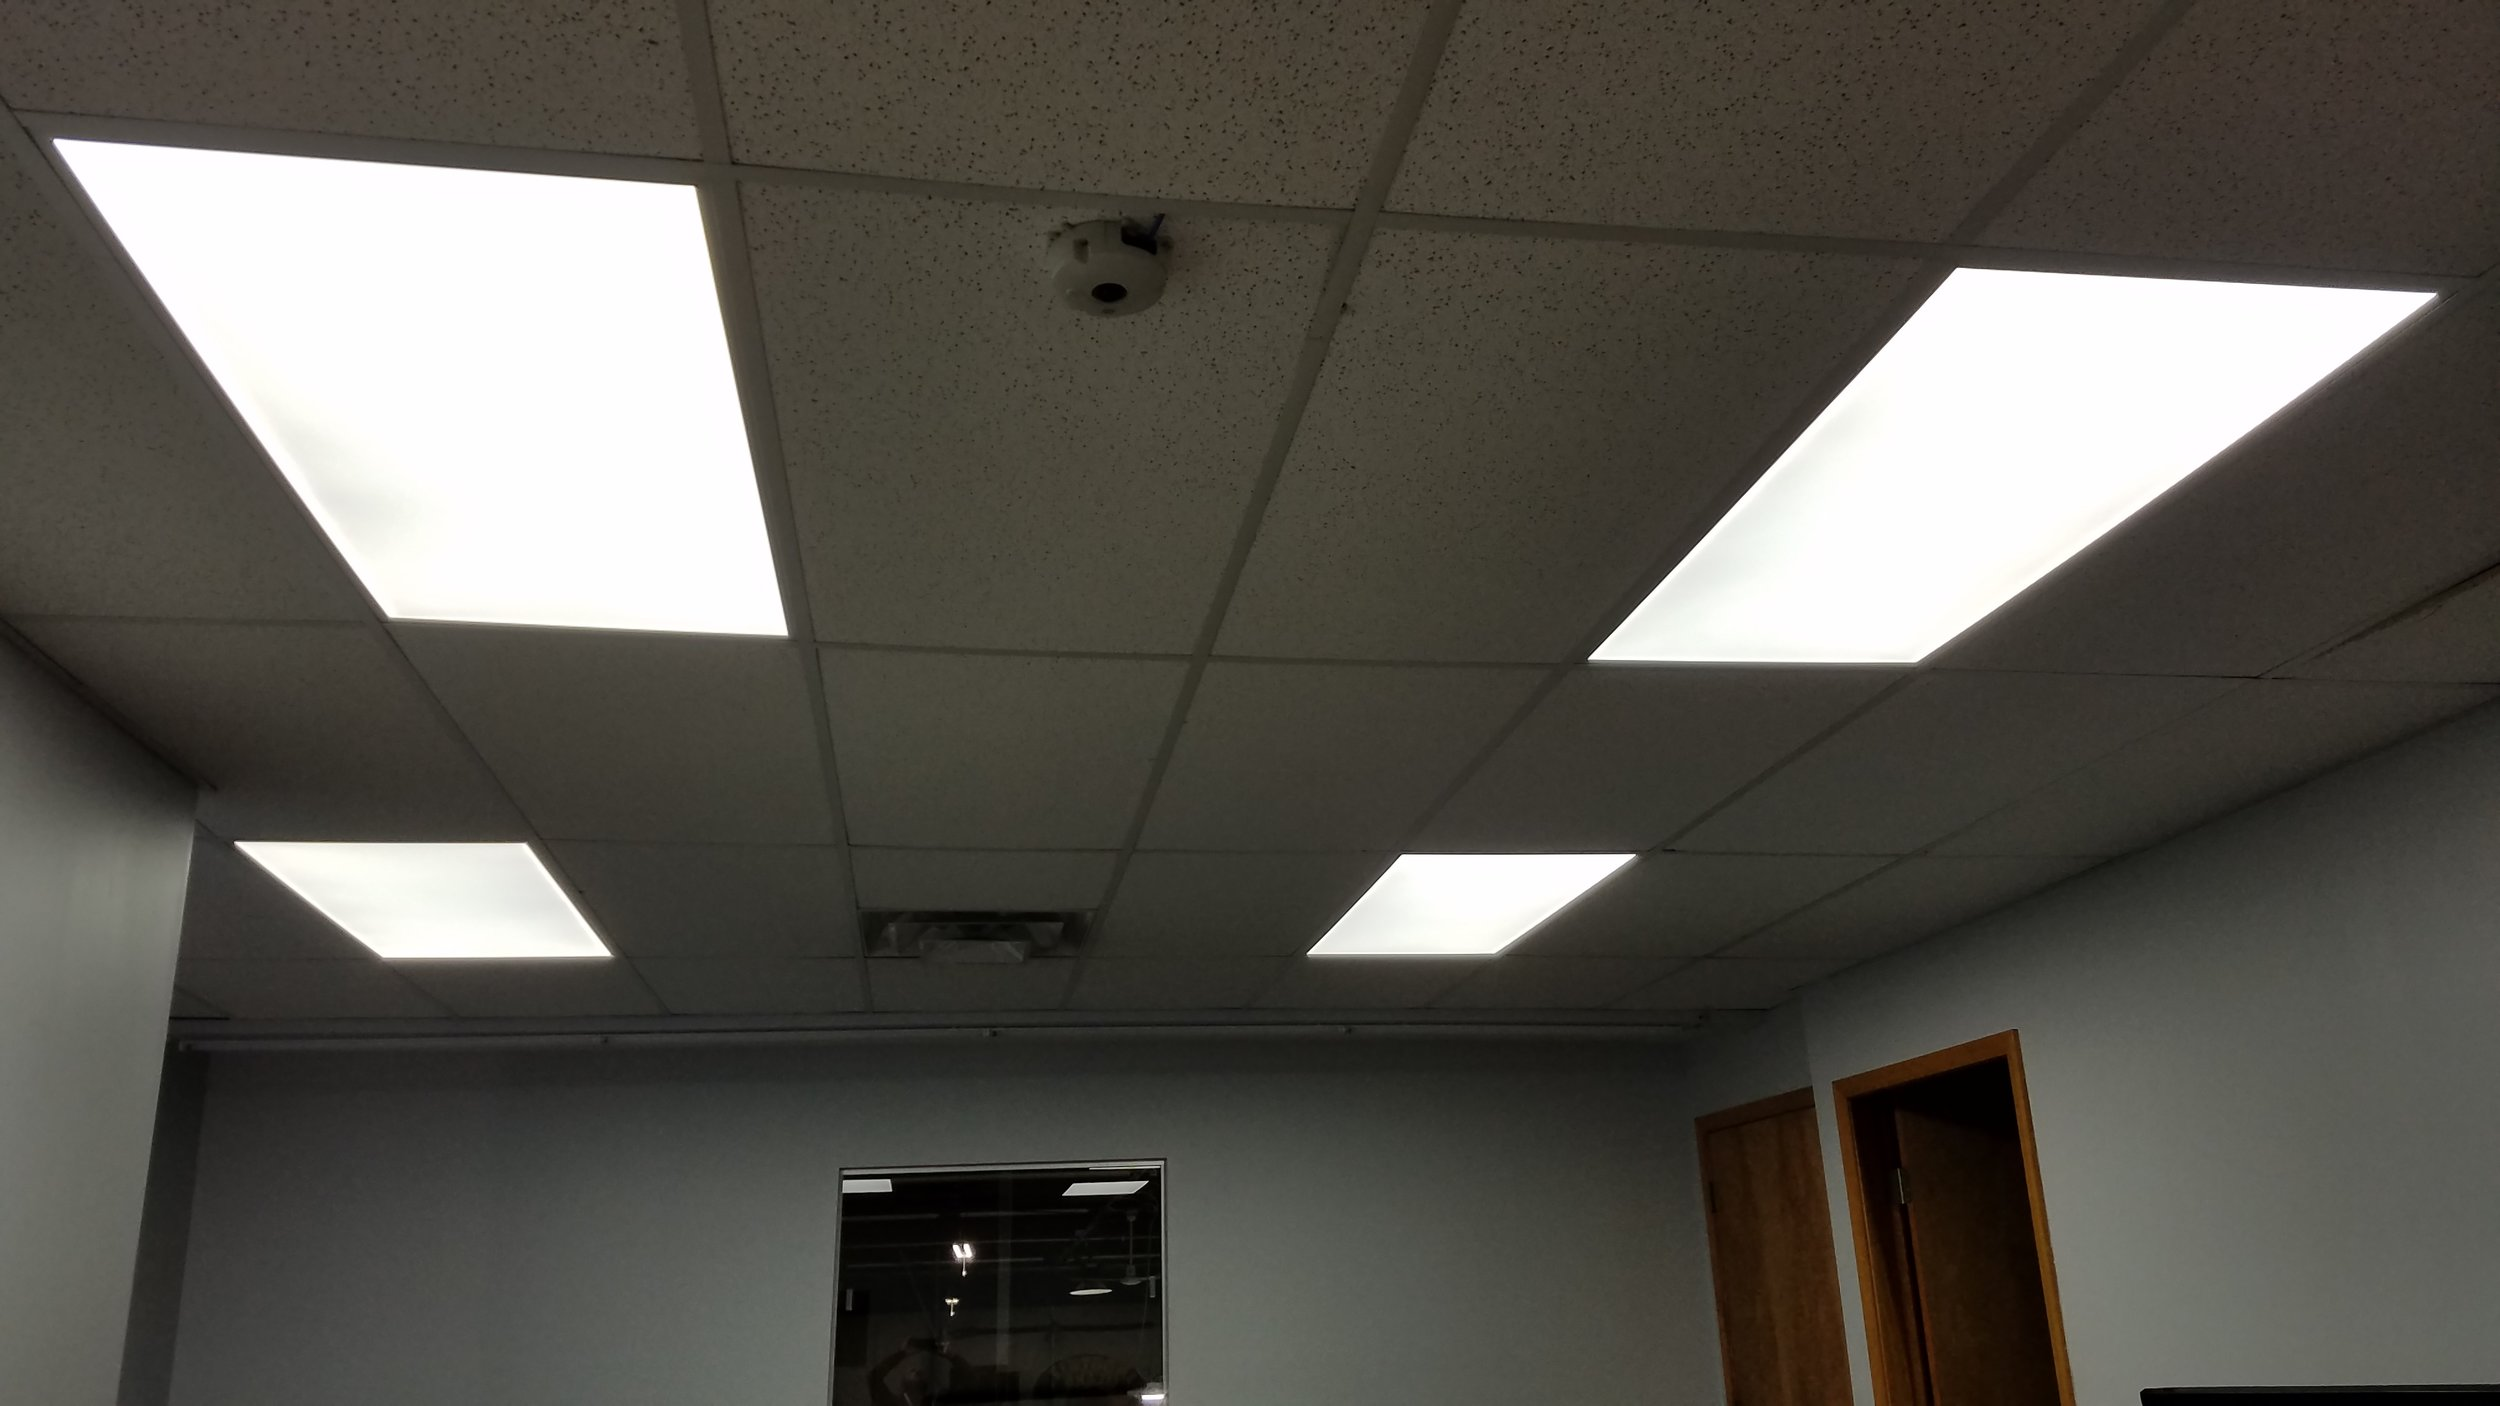 LED Flat panel lights in a drop ceiling